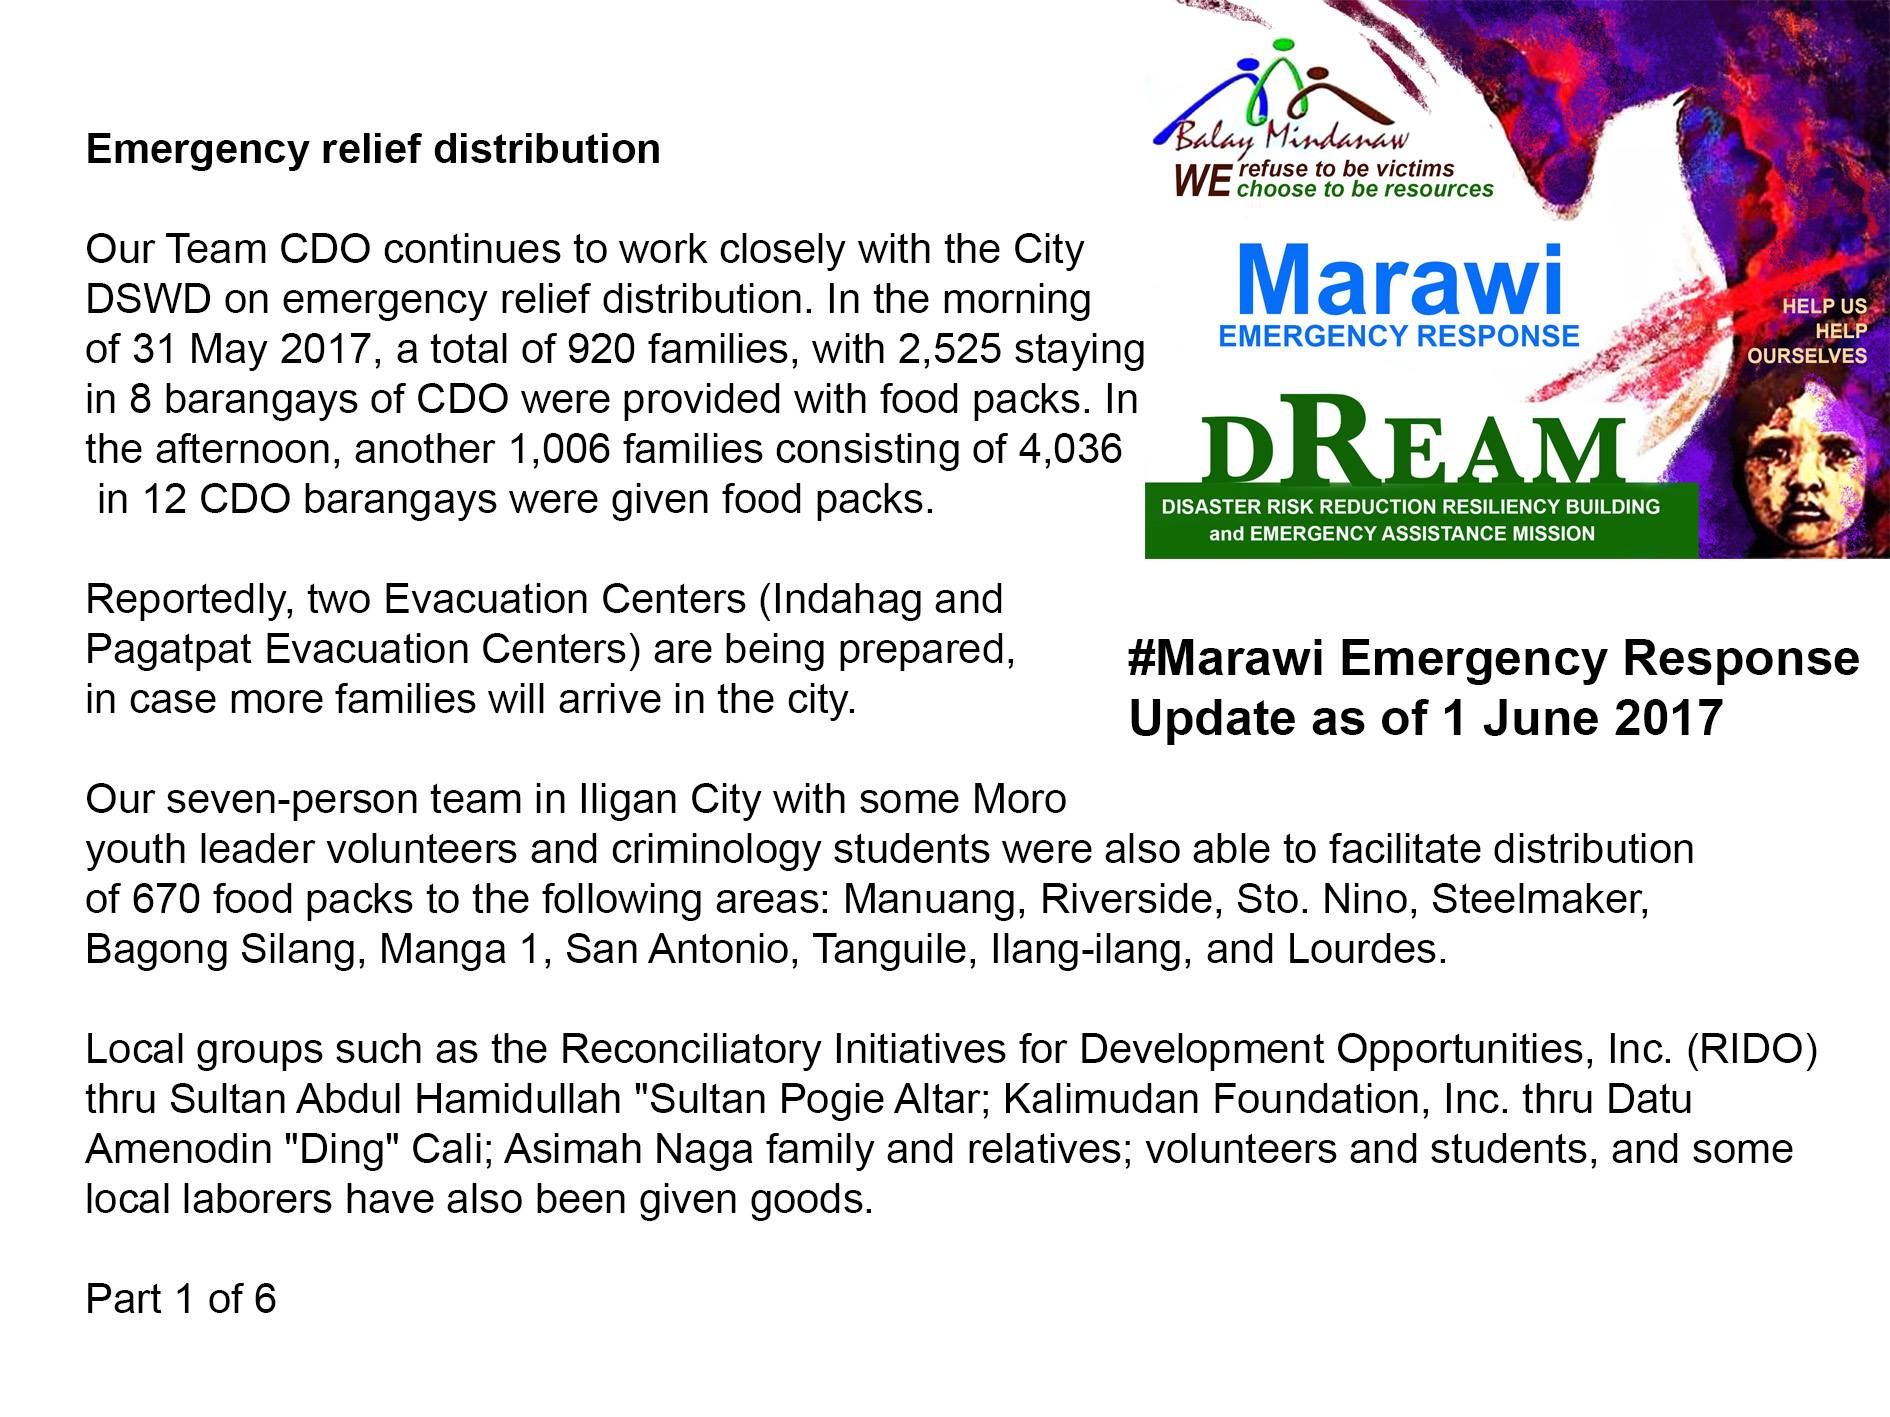 jun12017-Marawi-update-1